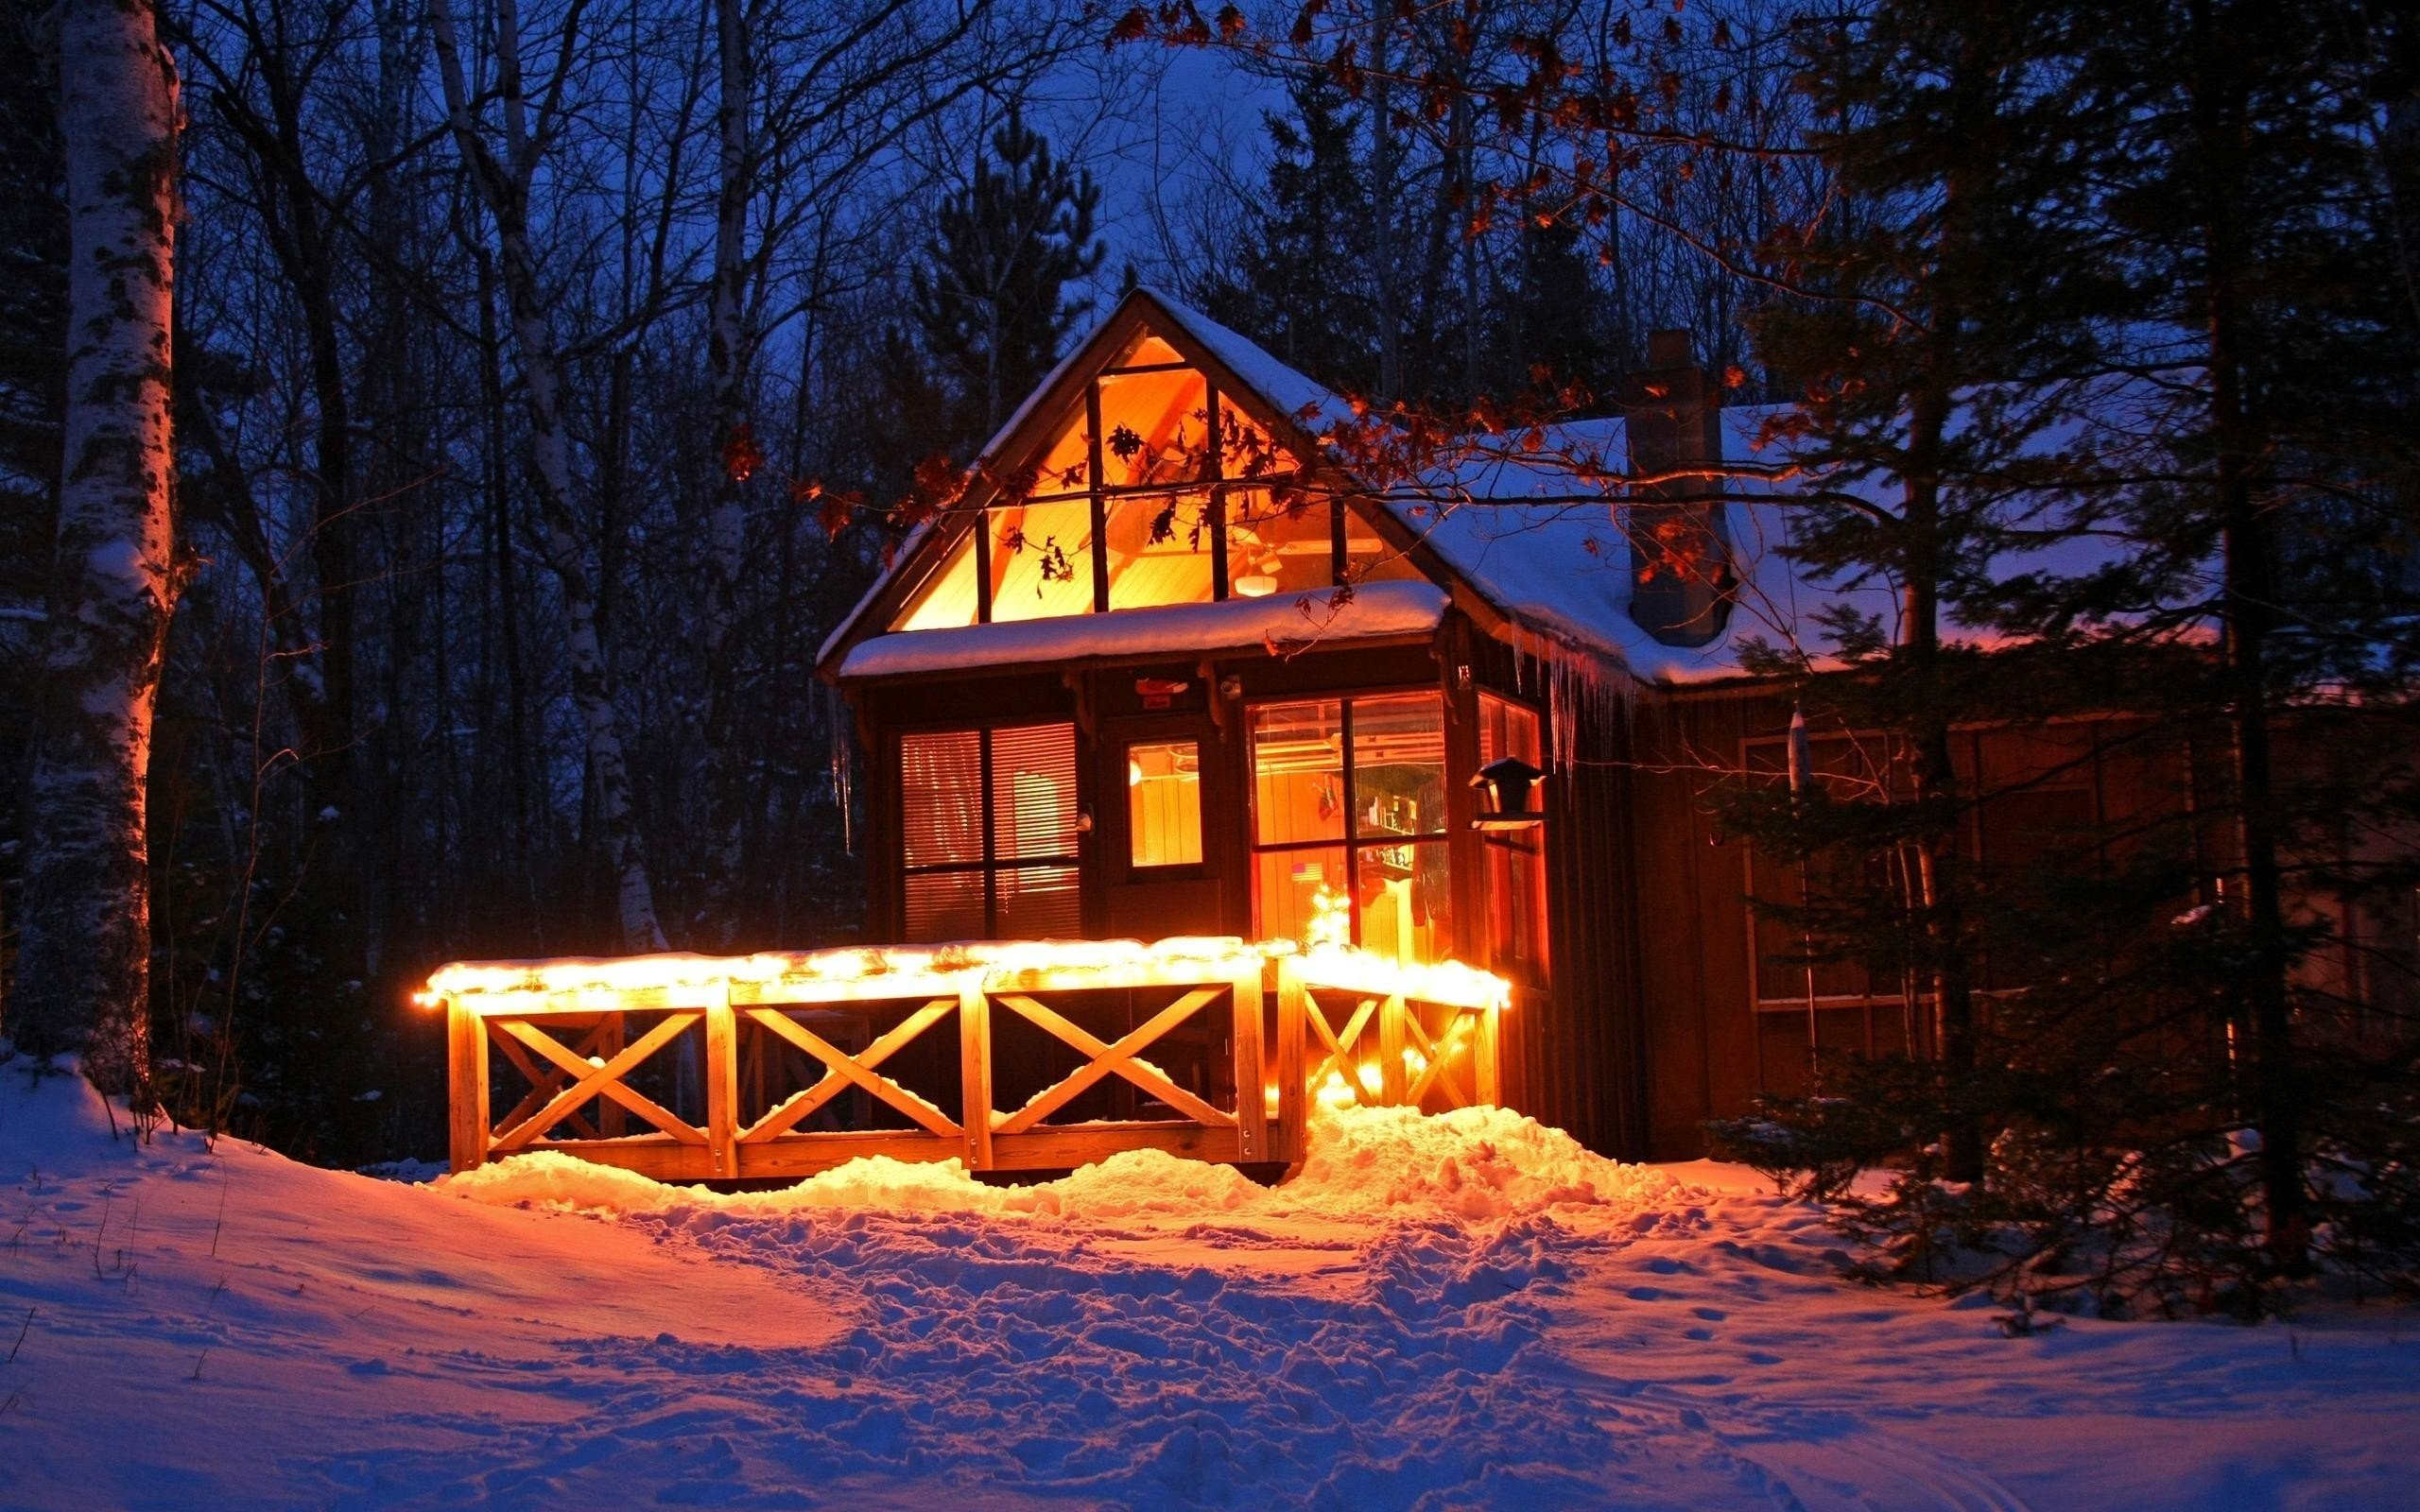 62 Winter Cabin Wallpapers on WallpaperPlay 2560x1600